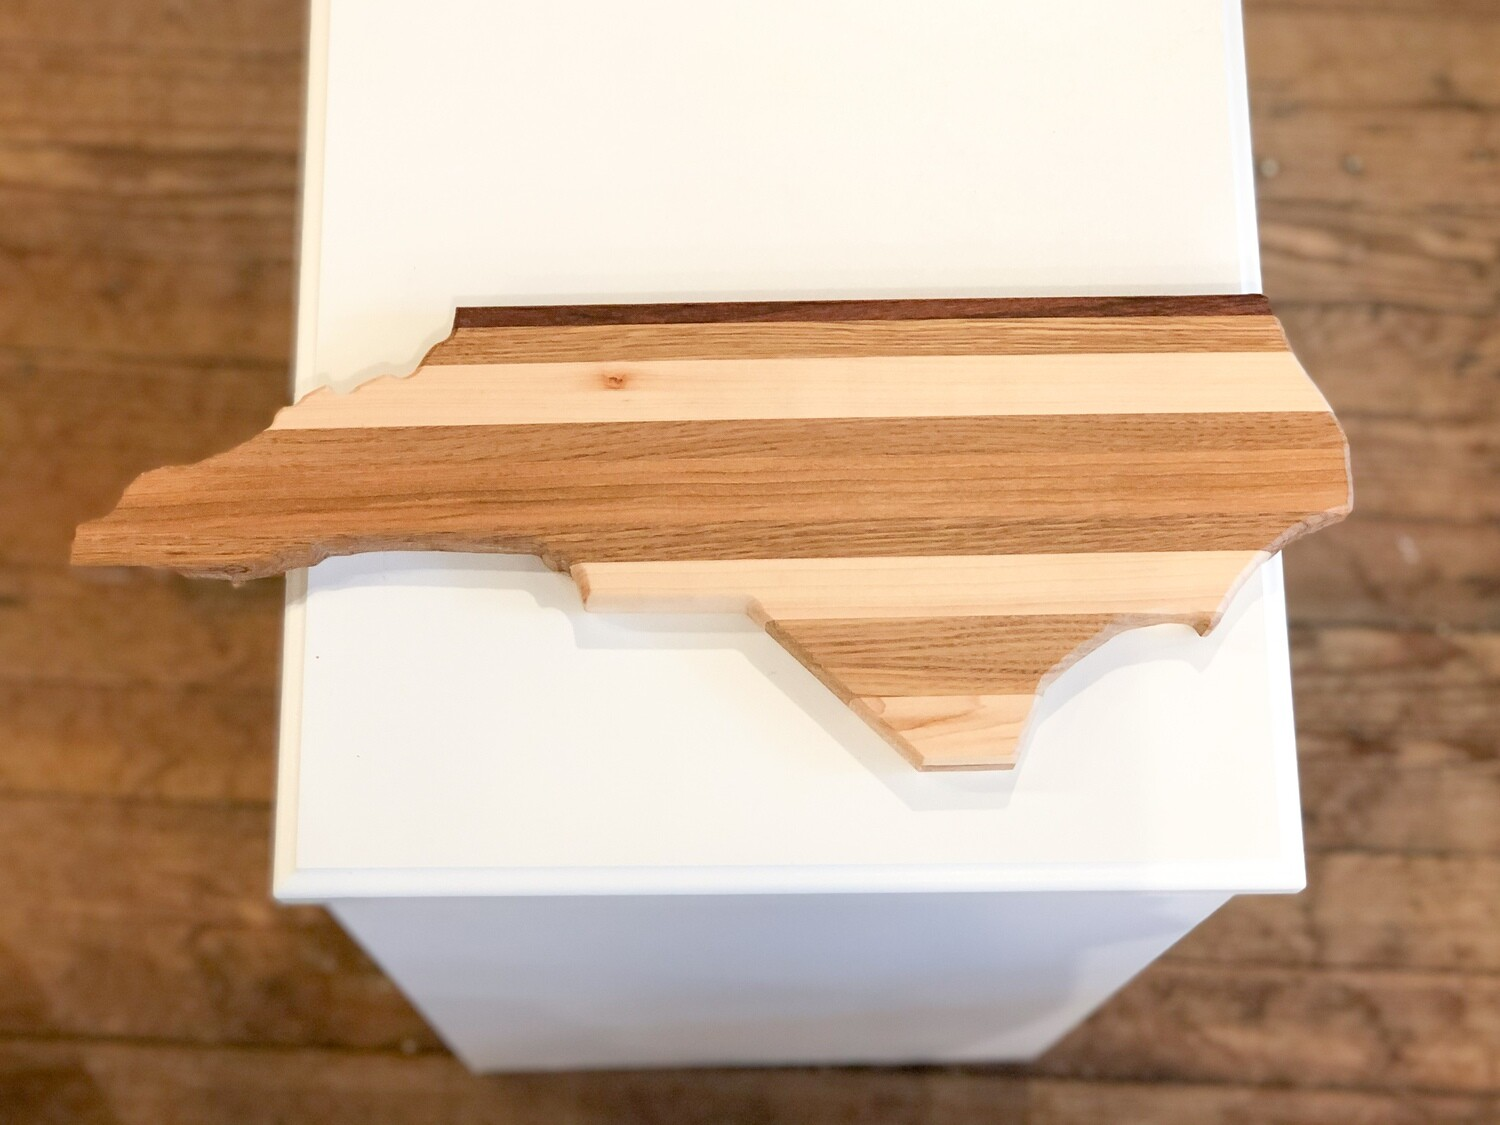 Crhs-117 Cutting Board Wood In Shape Of N.C. Thick